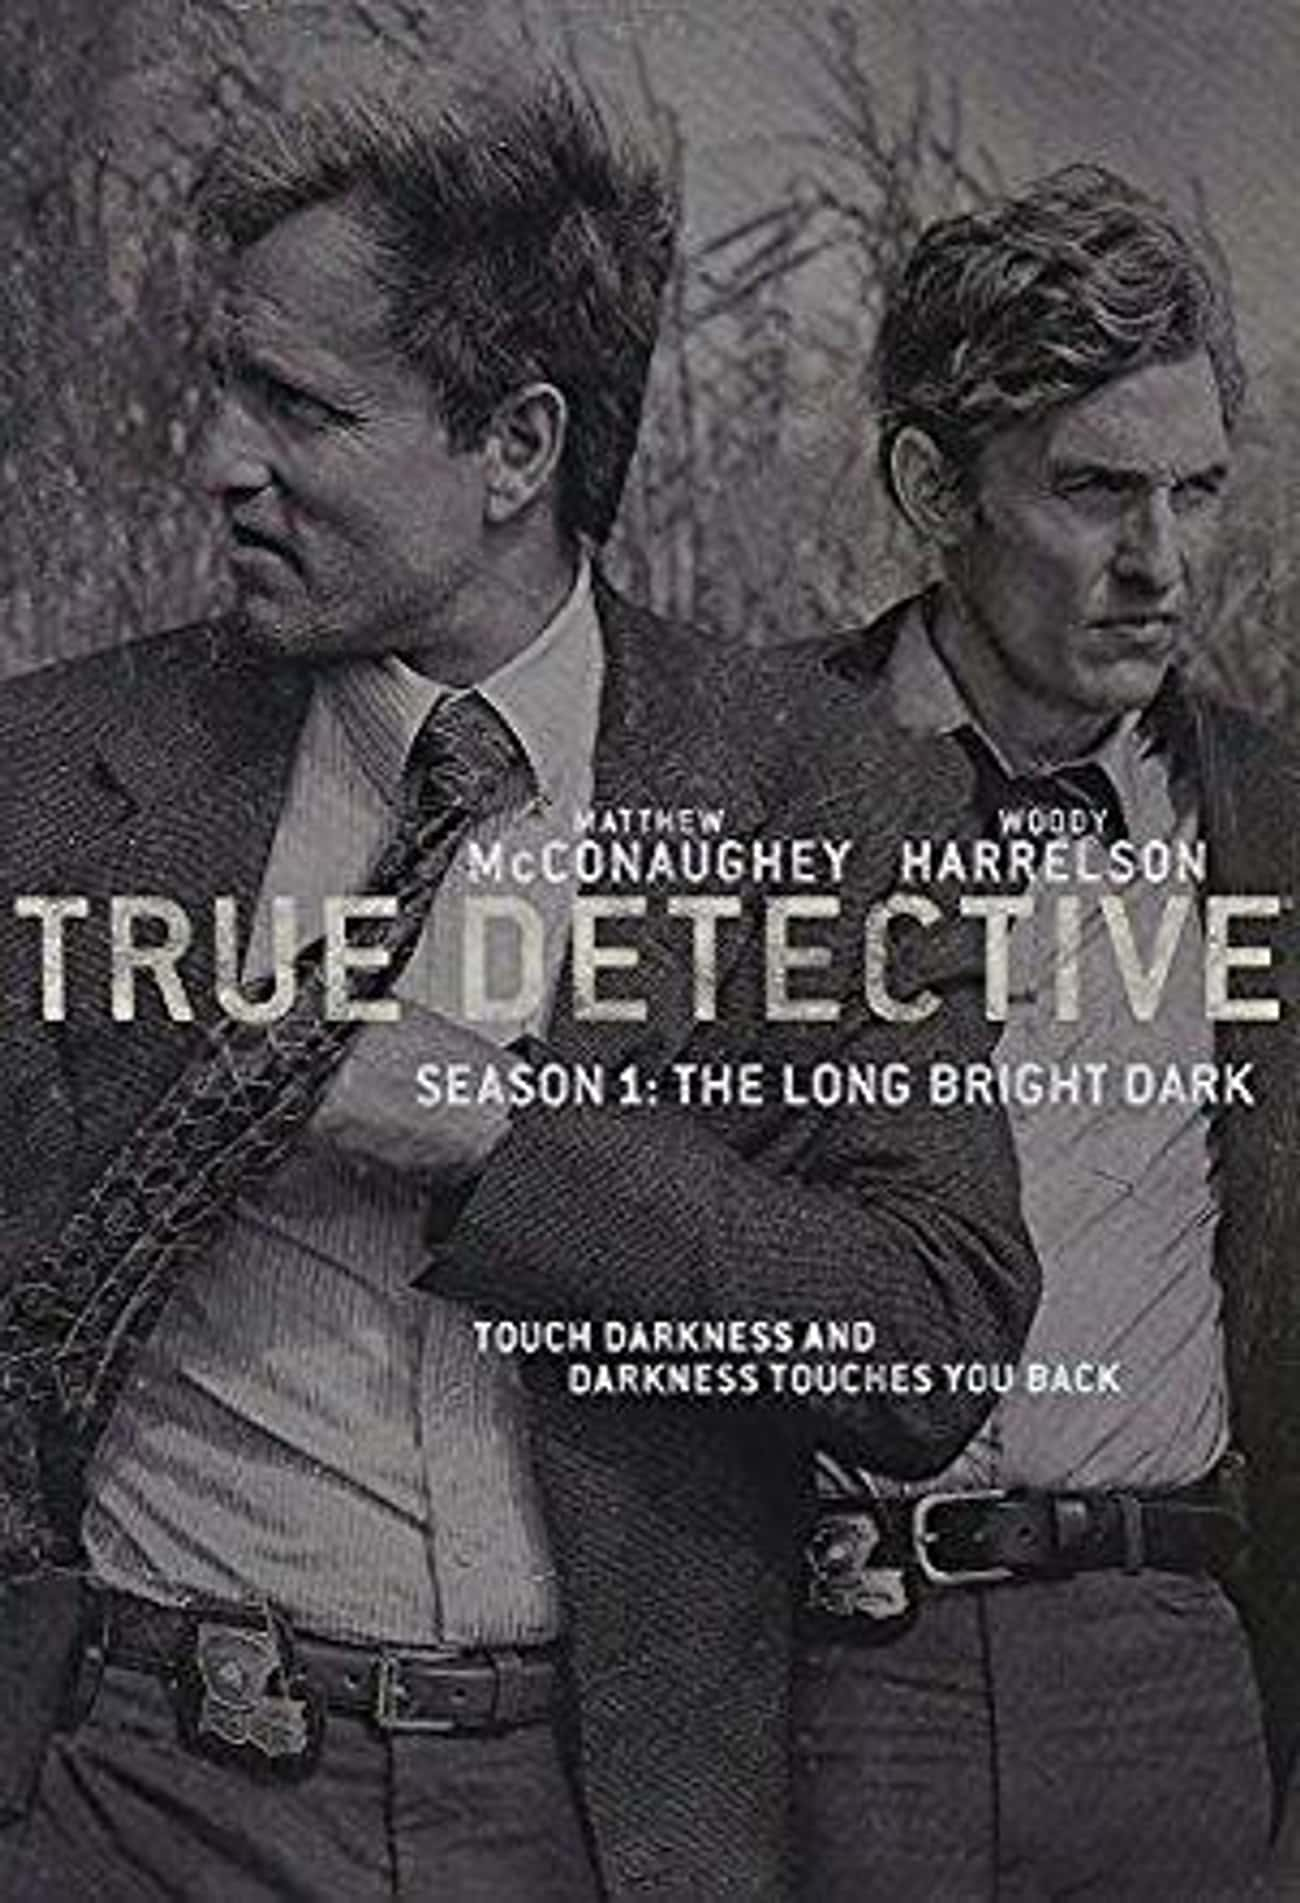 True Detective - Season 1 is listed (or ranked) 1 on the list The Best Seasons of True Detective